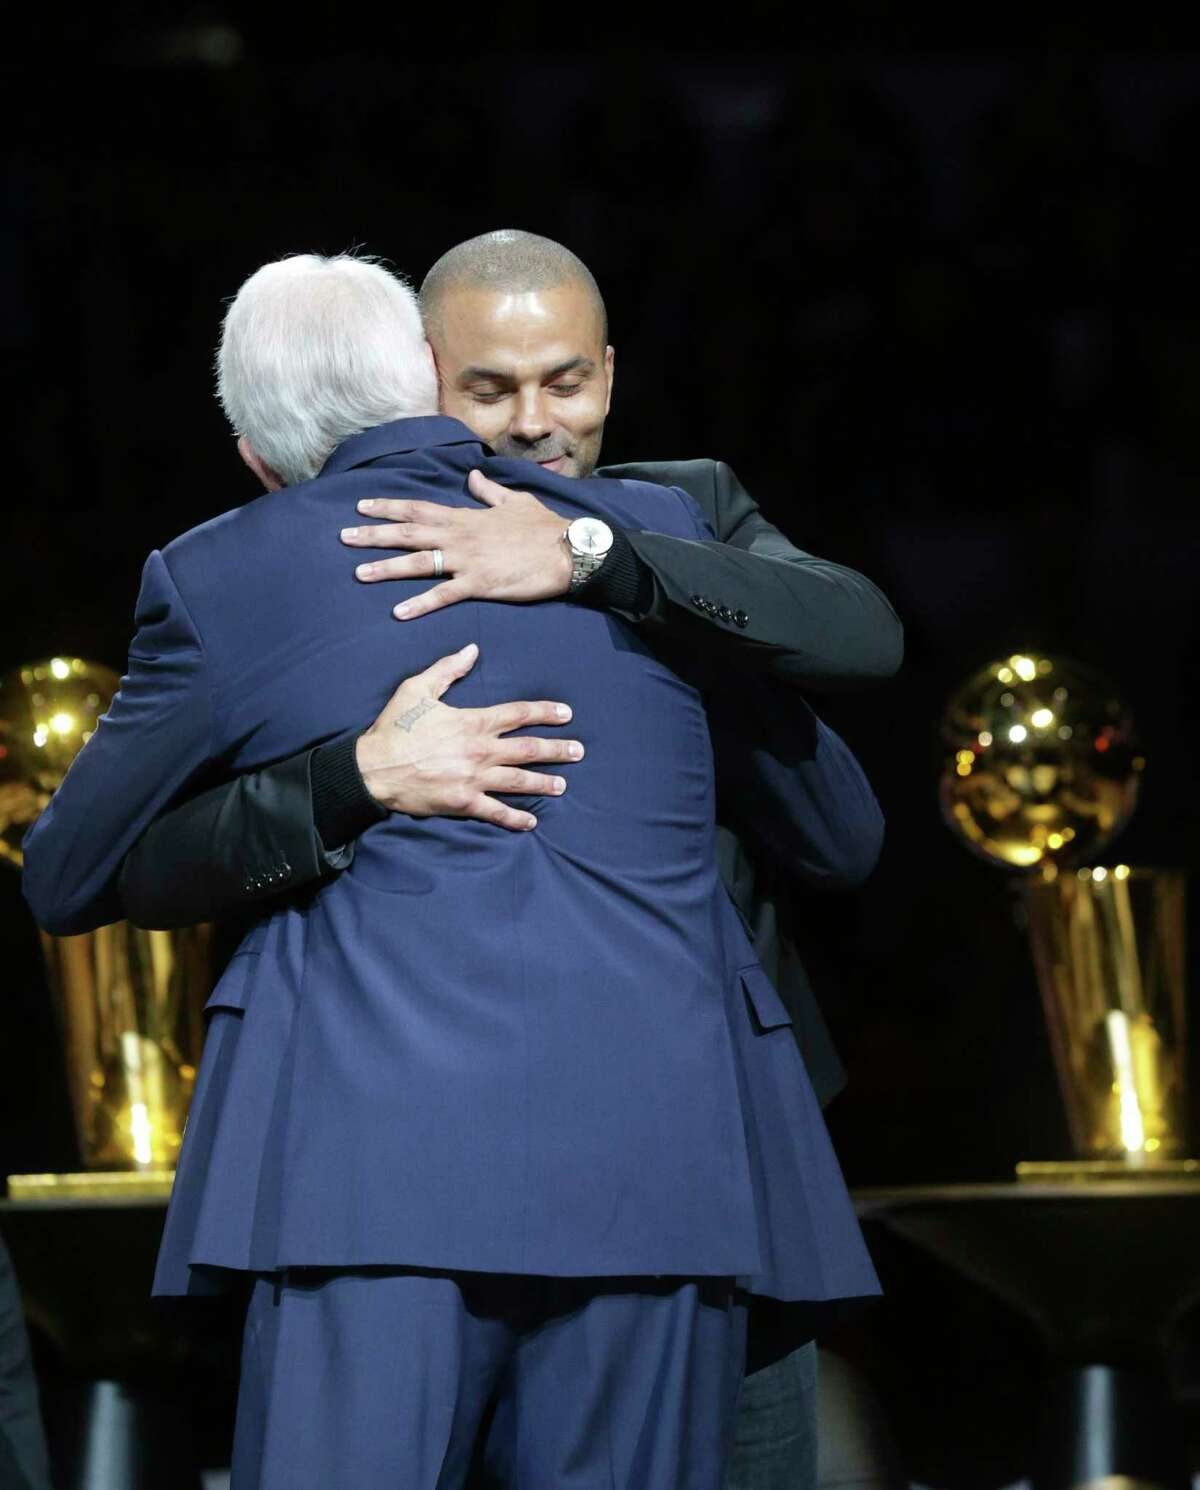 Merci, Tony! Spurs star Tony Parker gets a hug during his recent jersey retirement ceremony. A reader is proud of the Spurs - a team recognized around the world.